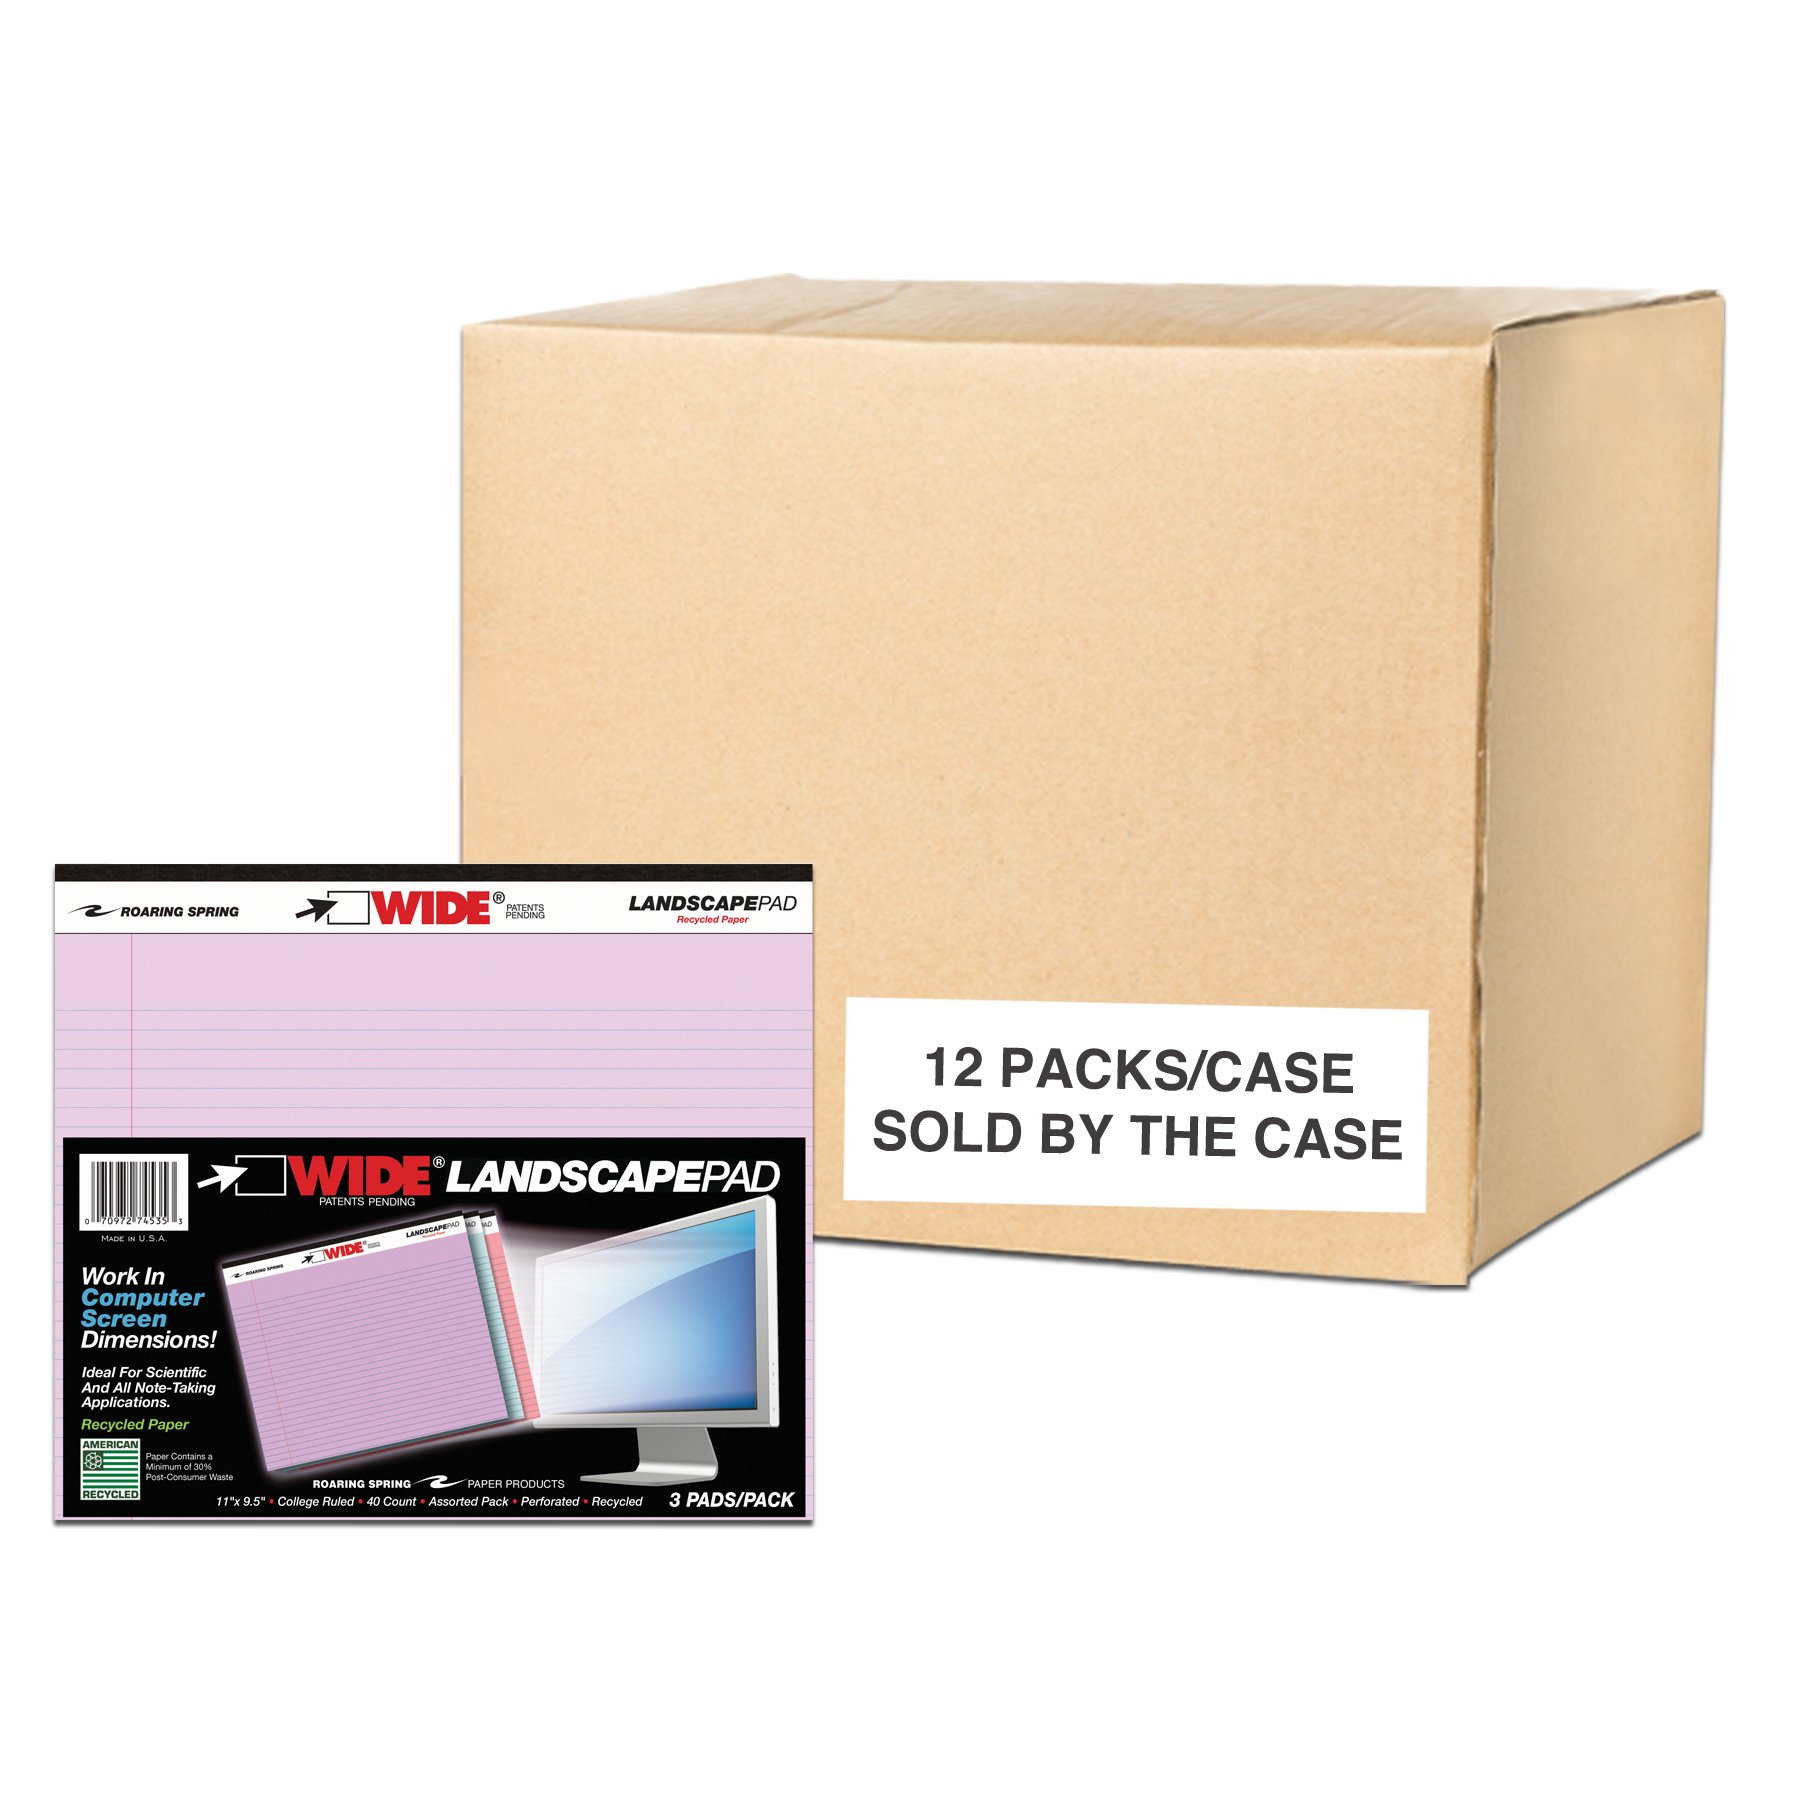 Case of 12 Packs of 3 Landscape Note Pads, 11''x9.5'', 40 sheets 16# Recycled pastel Paper Per Pads, 3 Assorted Colors, College Ruled by Roaring Spring